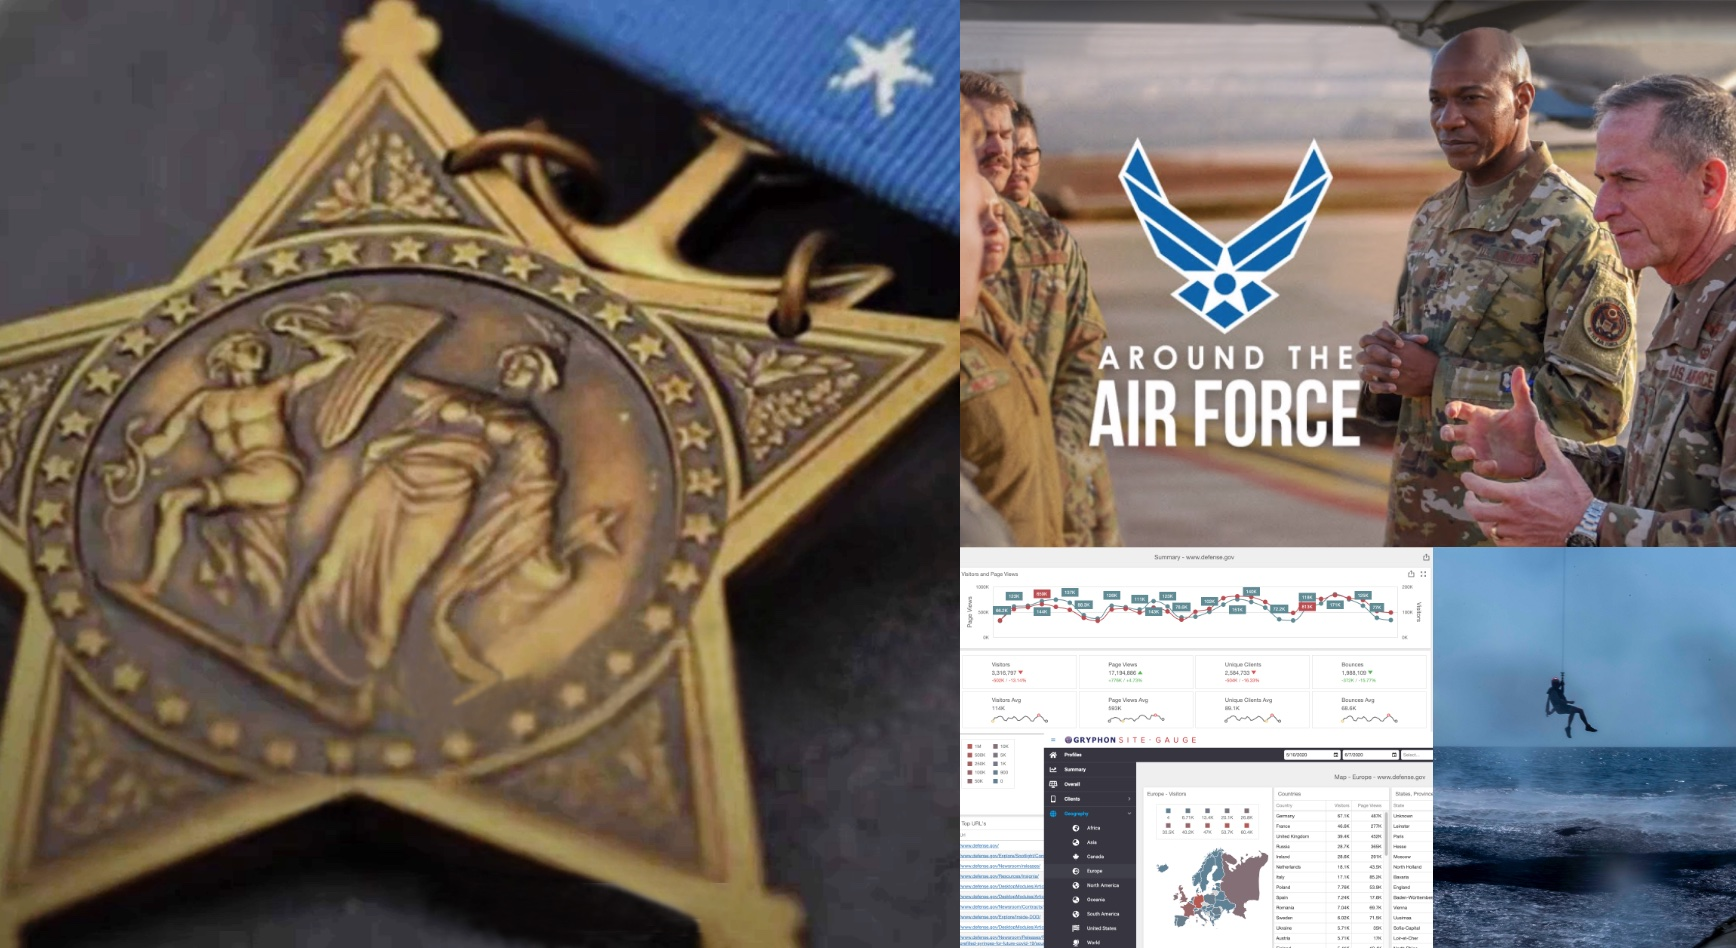 air force unit activities and medallion